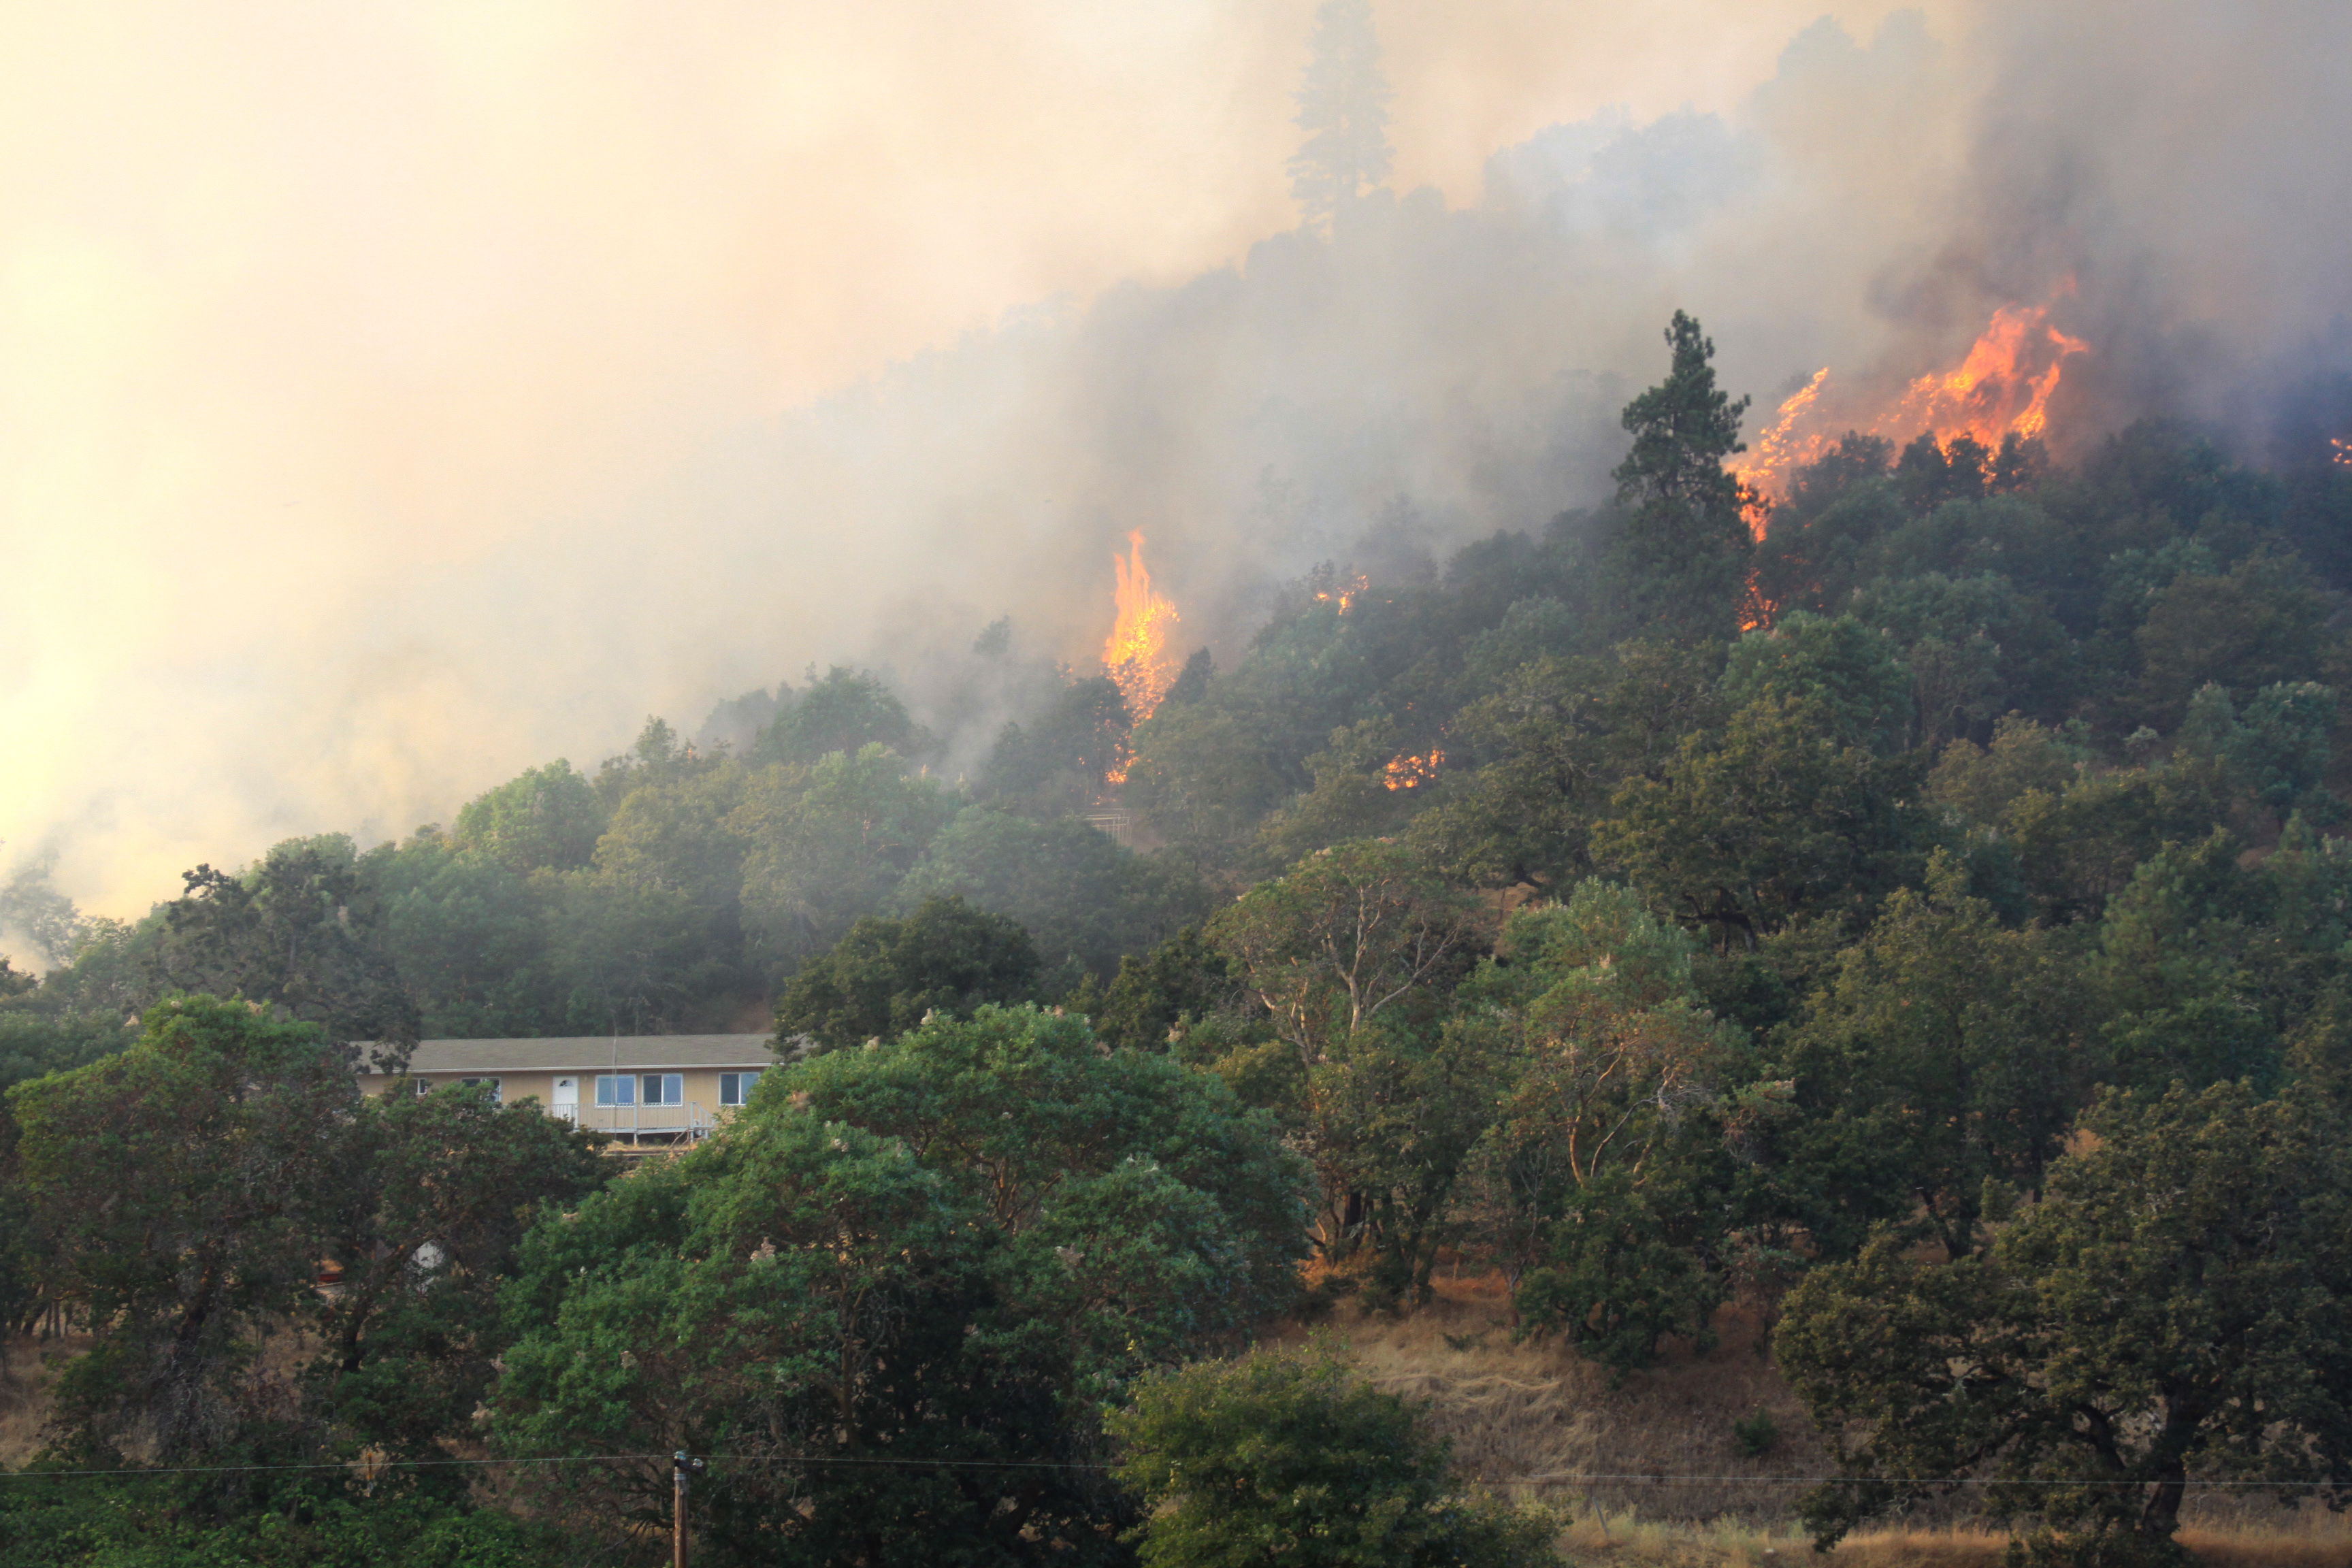 Smoke and fire on forested hillside